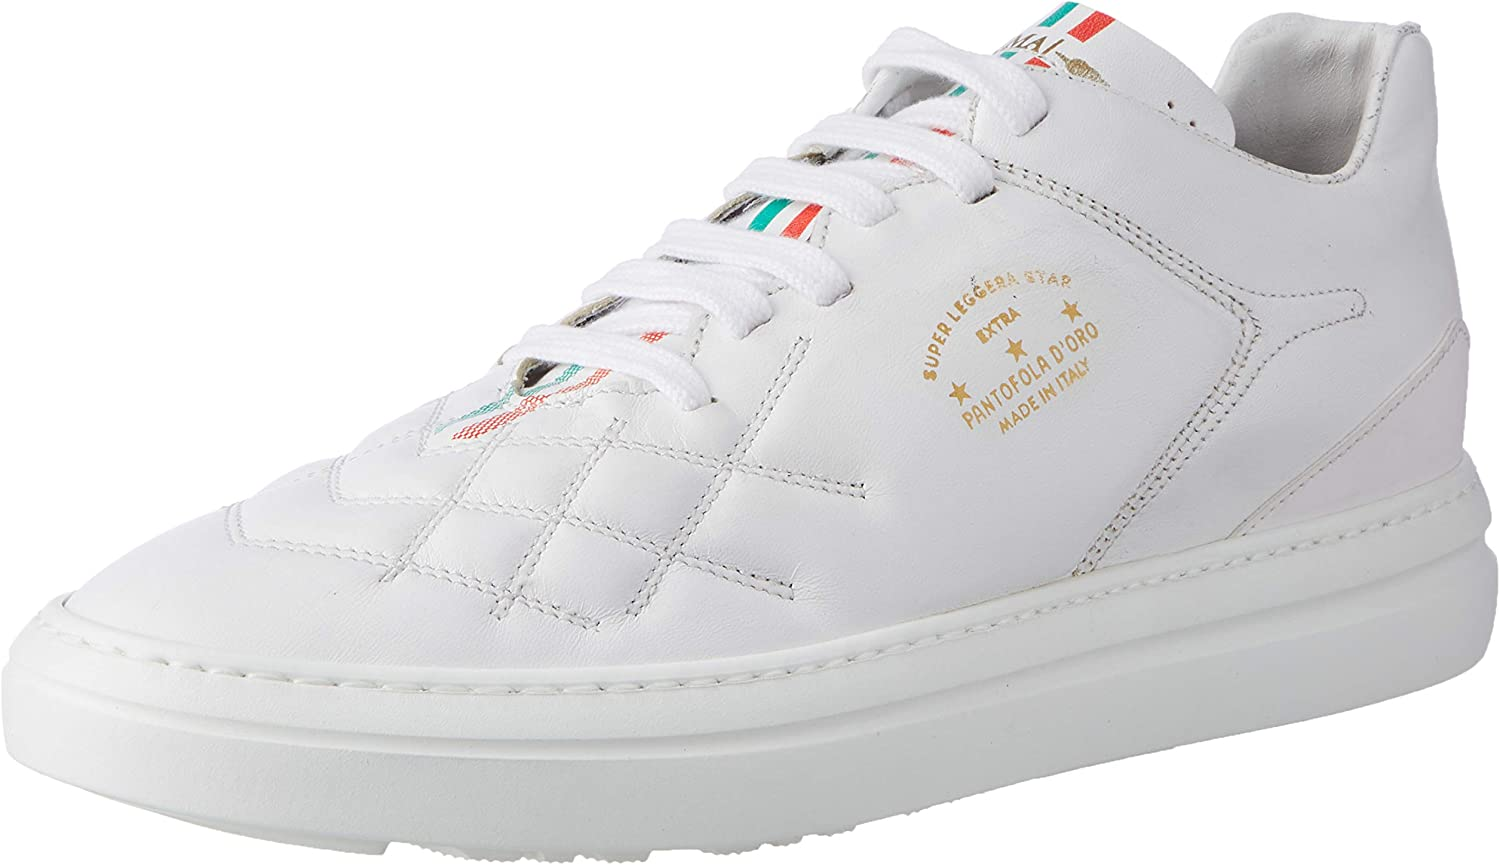 PANTOFOLA D'ORO 1886 Men's Flat OFFicial mail order Oxford Selling and selling Gymnastics